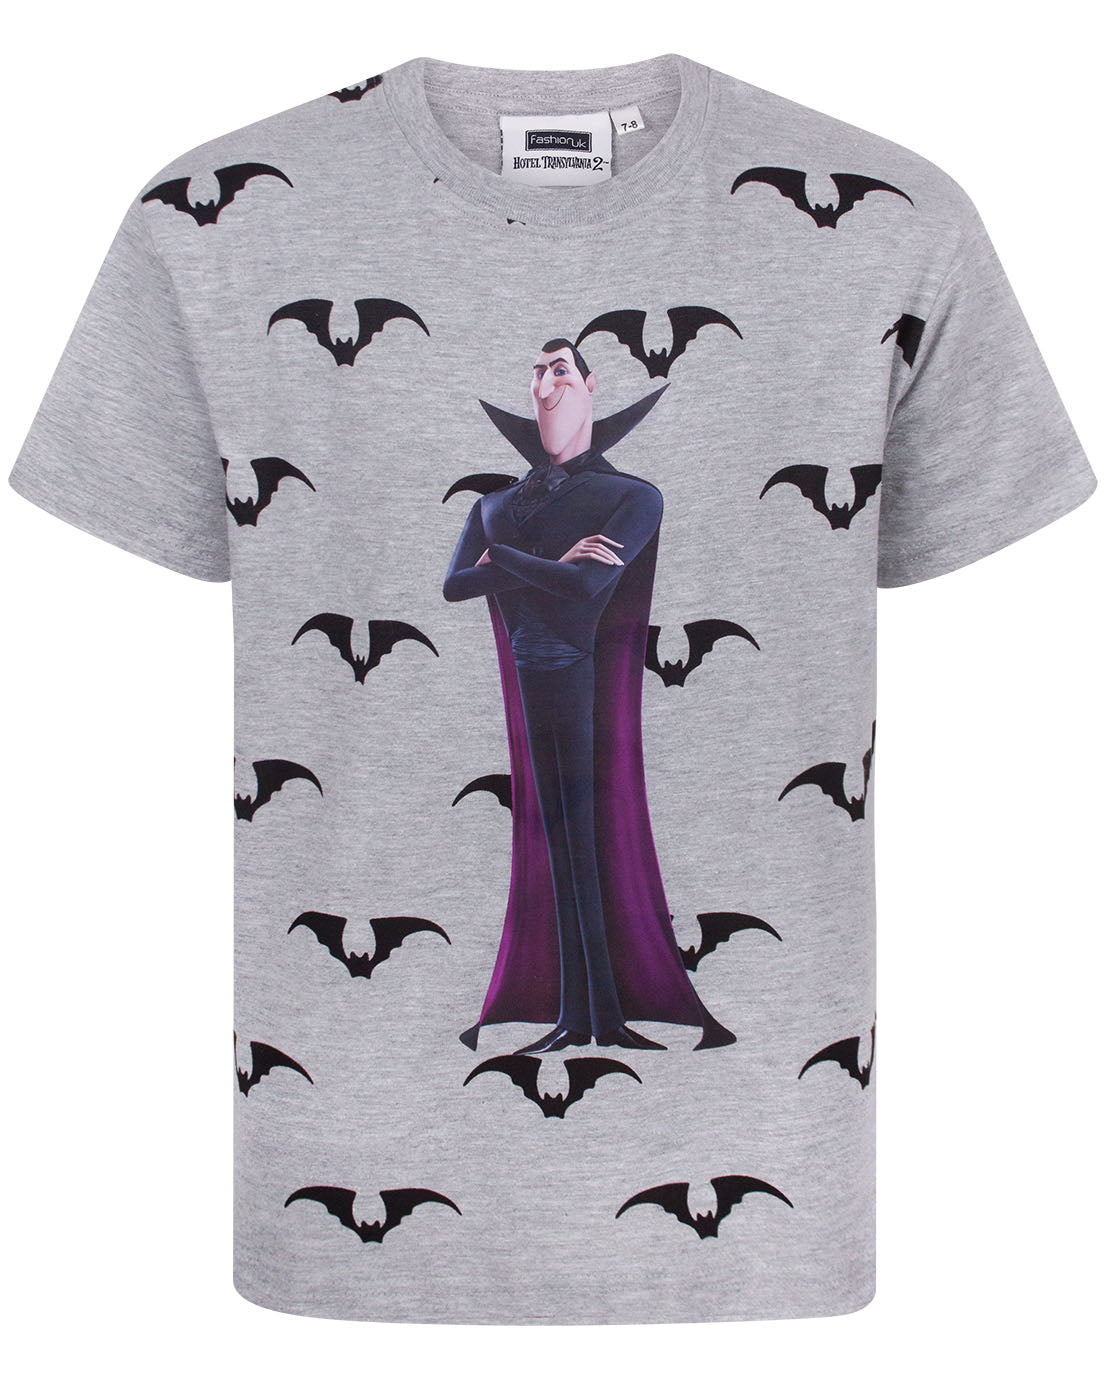 Hotel Transylvania 3 Movie Characters All Over Print Kid/'s T-Shirt